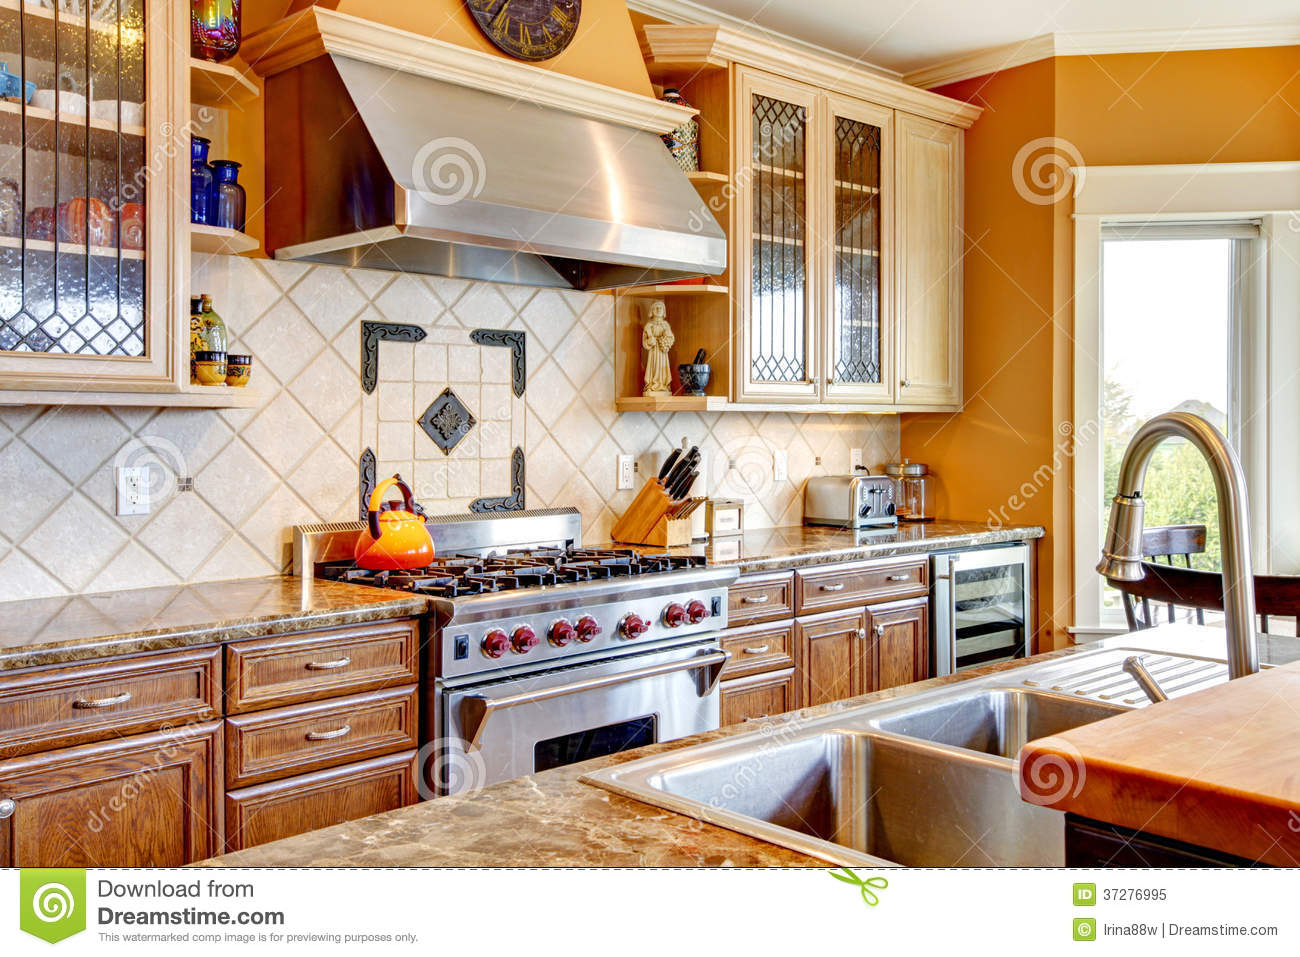 Wood Kitchen Room With Decorated Tile Backsplash Royalty Free